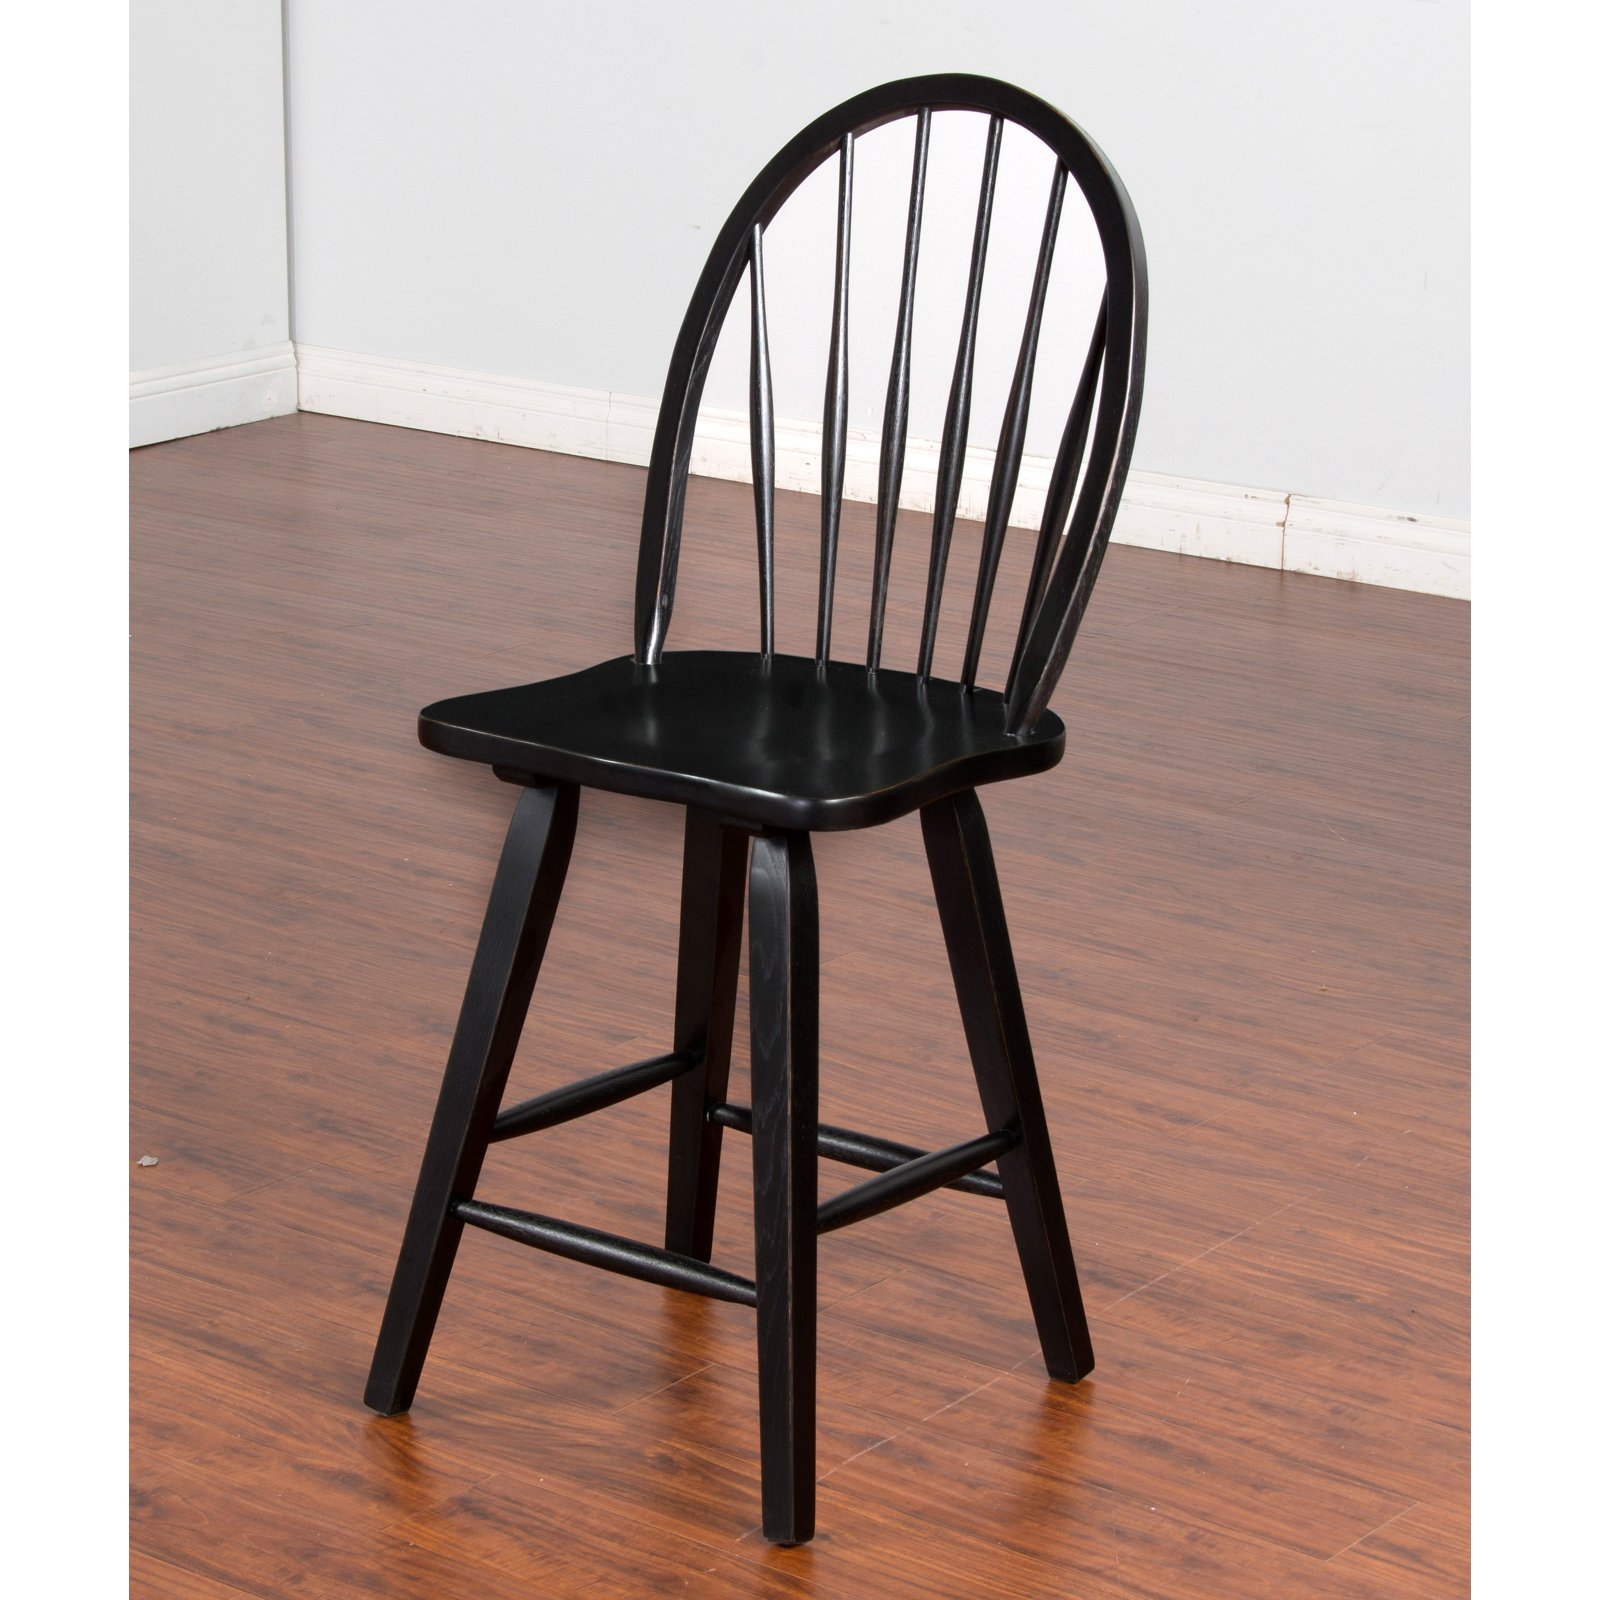 Sunny Designs Bowback 24 in. Counter Stool